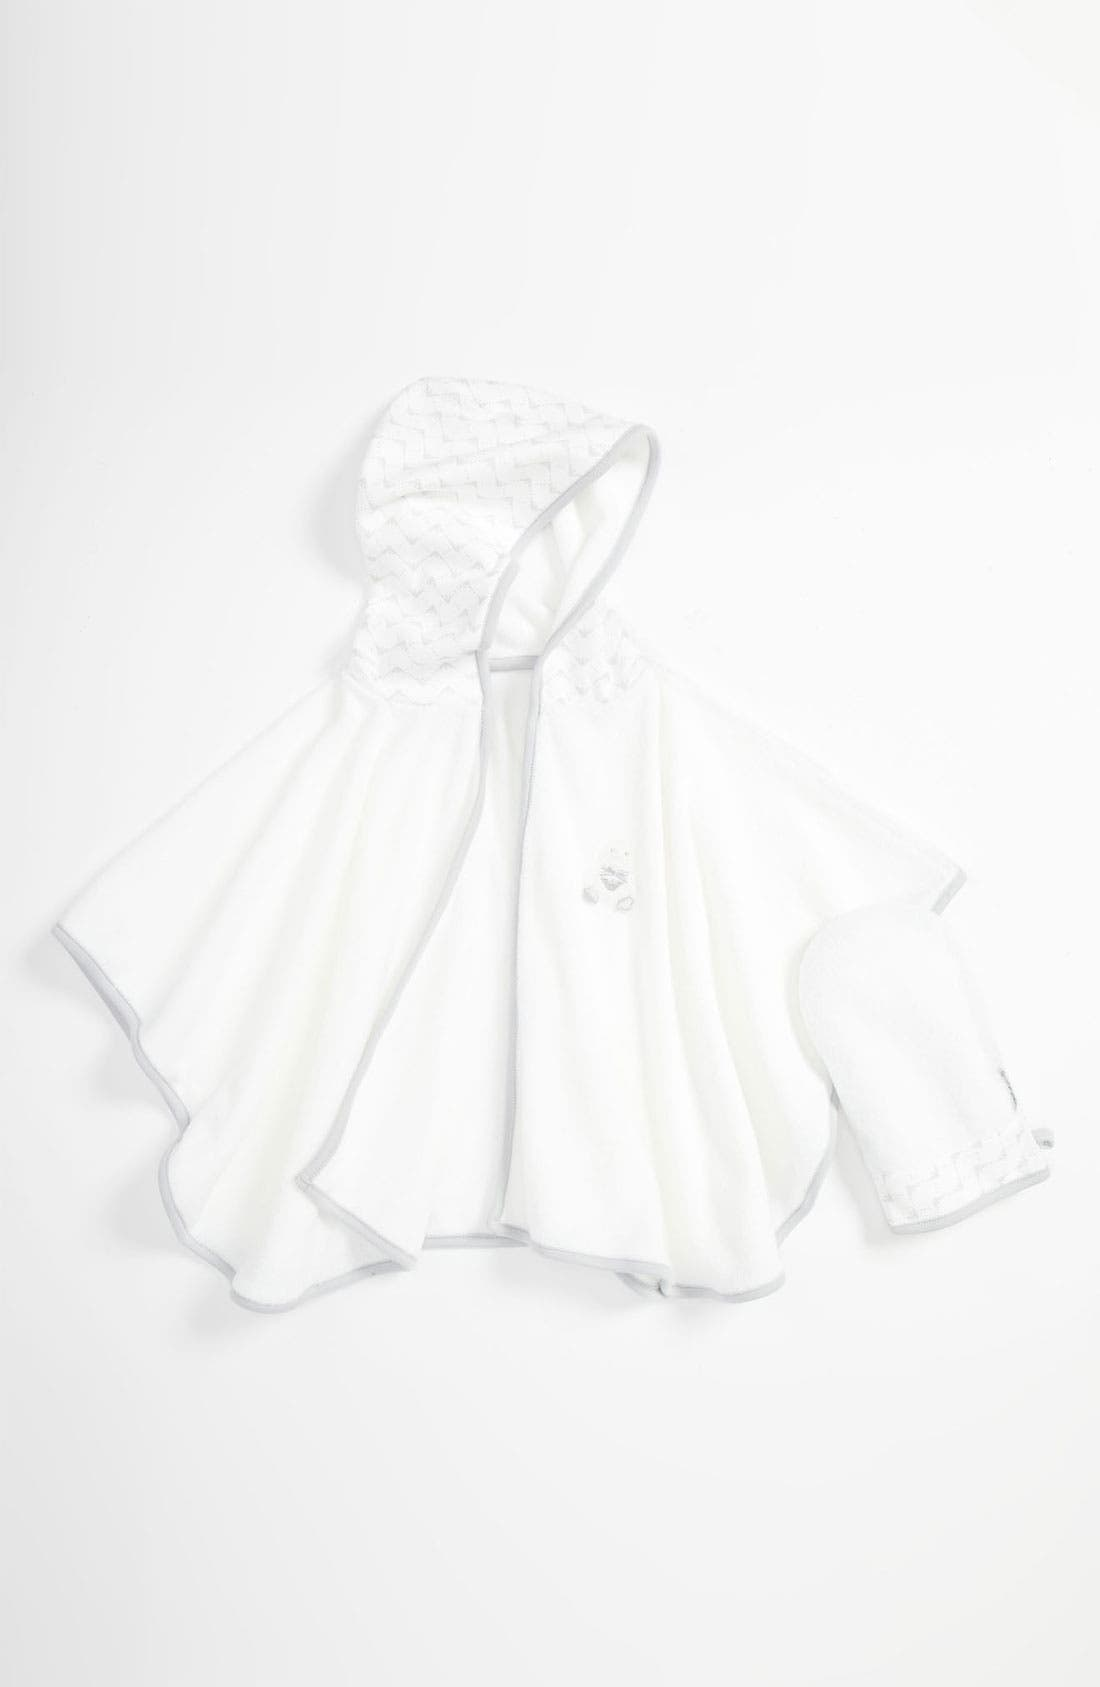 Alternate Image 1 Selected - Armani Junior Terry Cloth Bath Set (Baby)